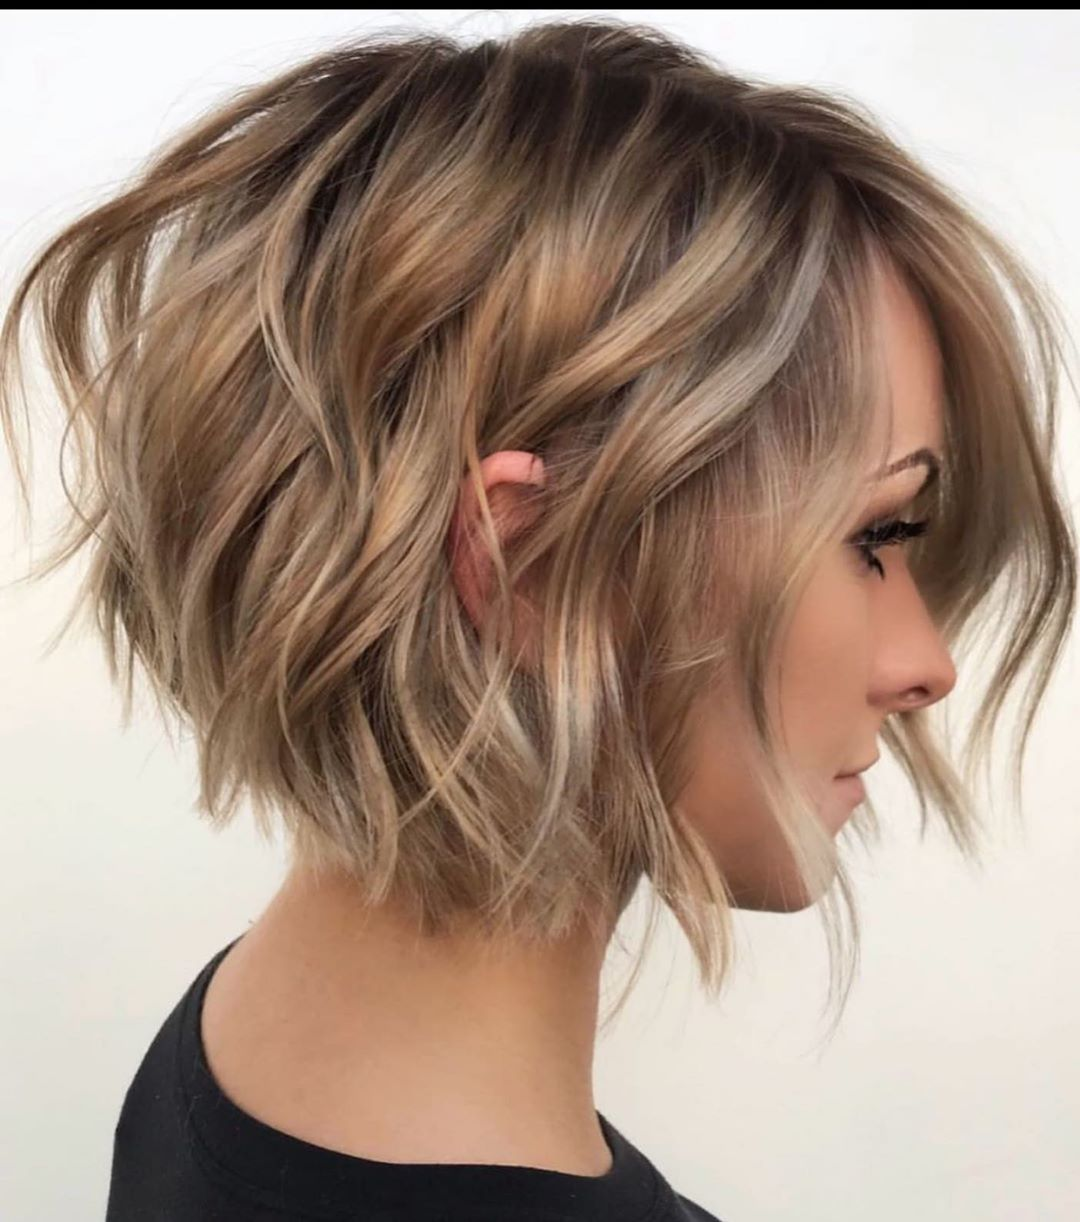 Short Textured Hair Expert On Instagram I Don T Know About You Guys But I Am So Korte Kapsels Voor Fijn Haar Bob Kapsel Voor Fijn Haar Kapsels Voor Kort Haar